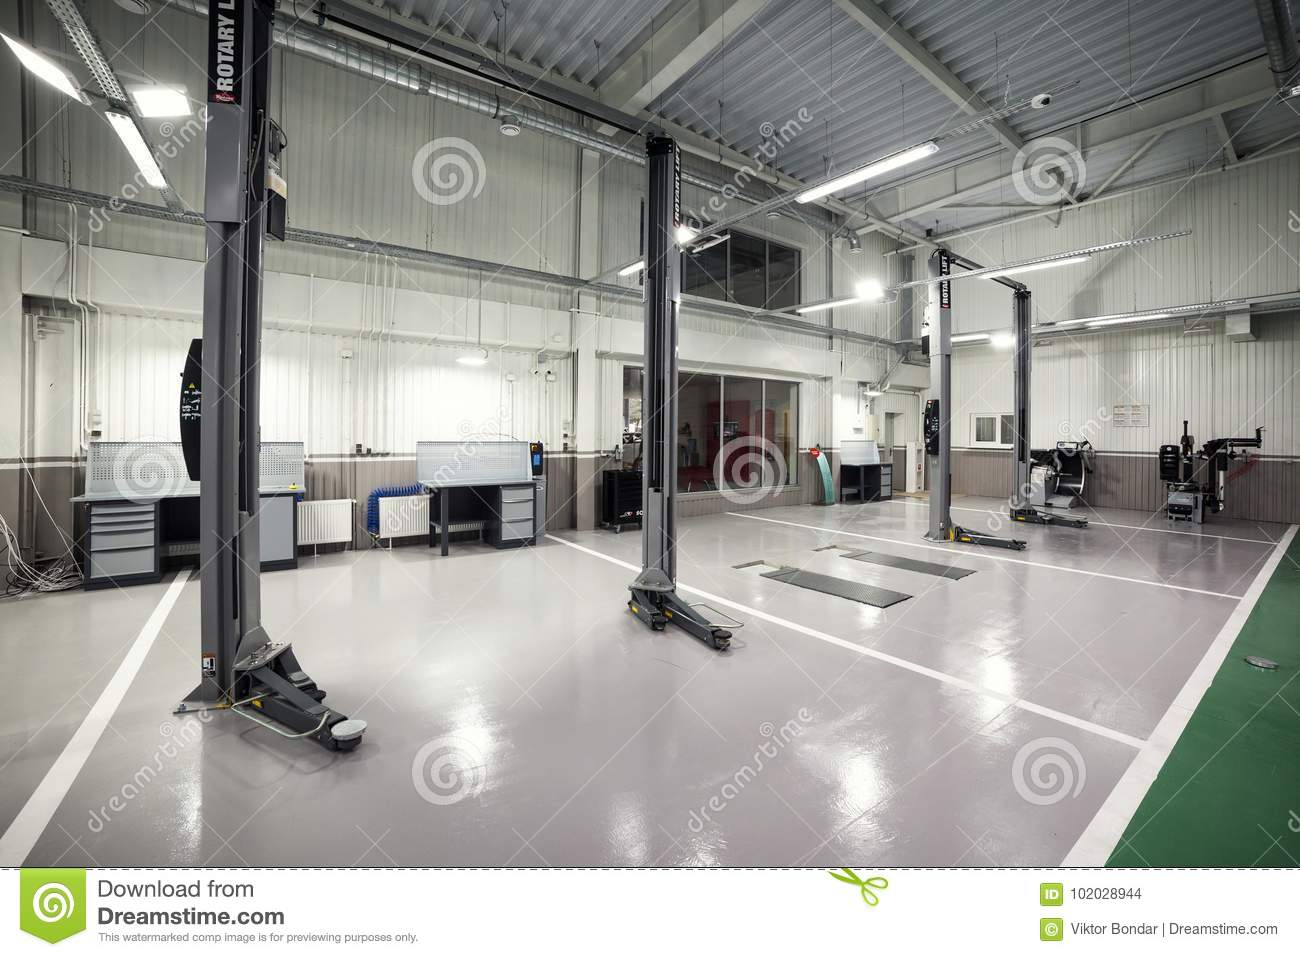 02 Of October 2017 Vinnitsa Ukraine Interior Car Care Center The Electric Lift For Cars In The Service Car Repair Service Centre Editorial Stock Image Image Of Background Maintenance 102028944